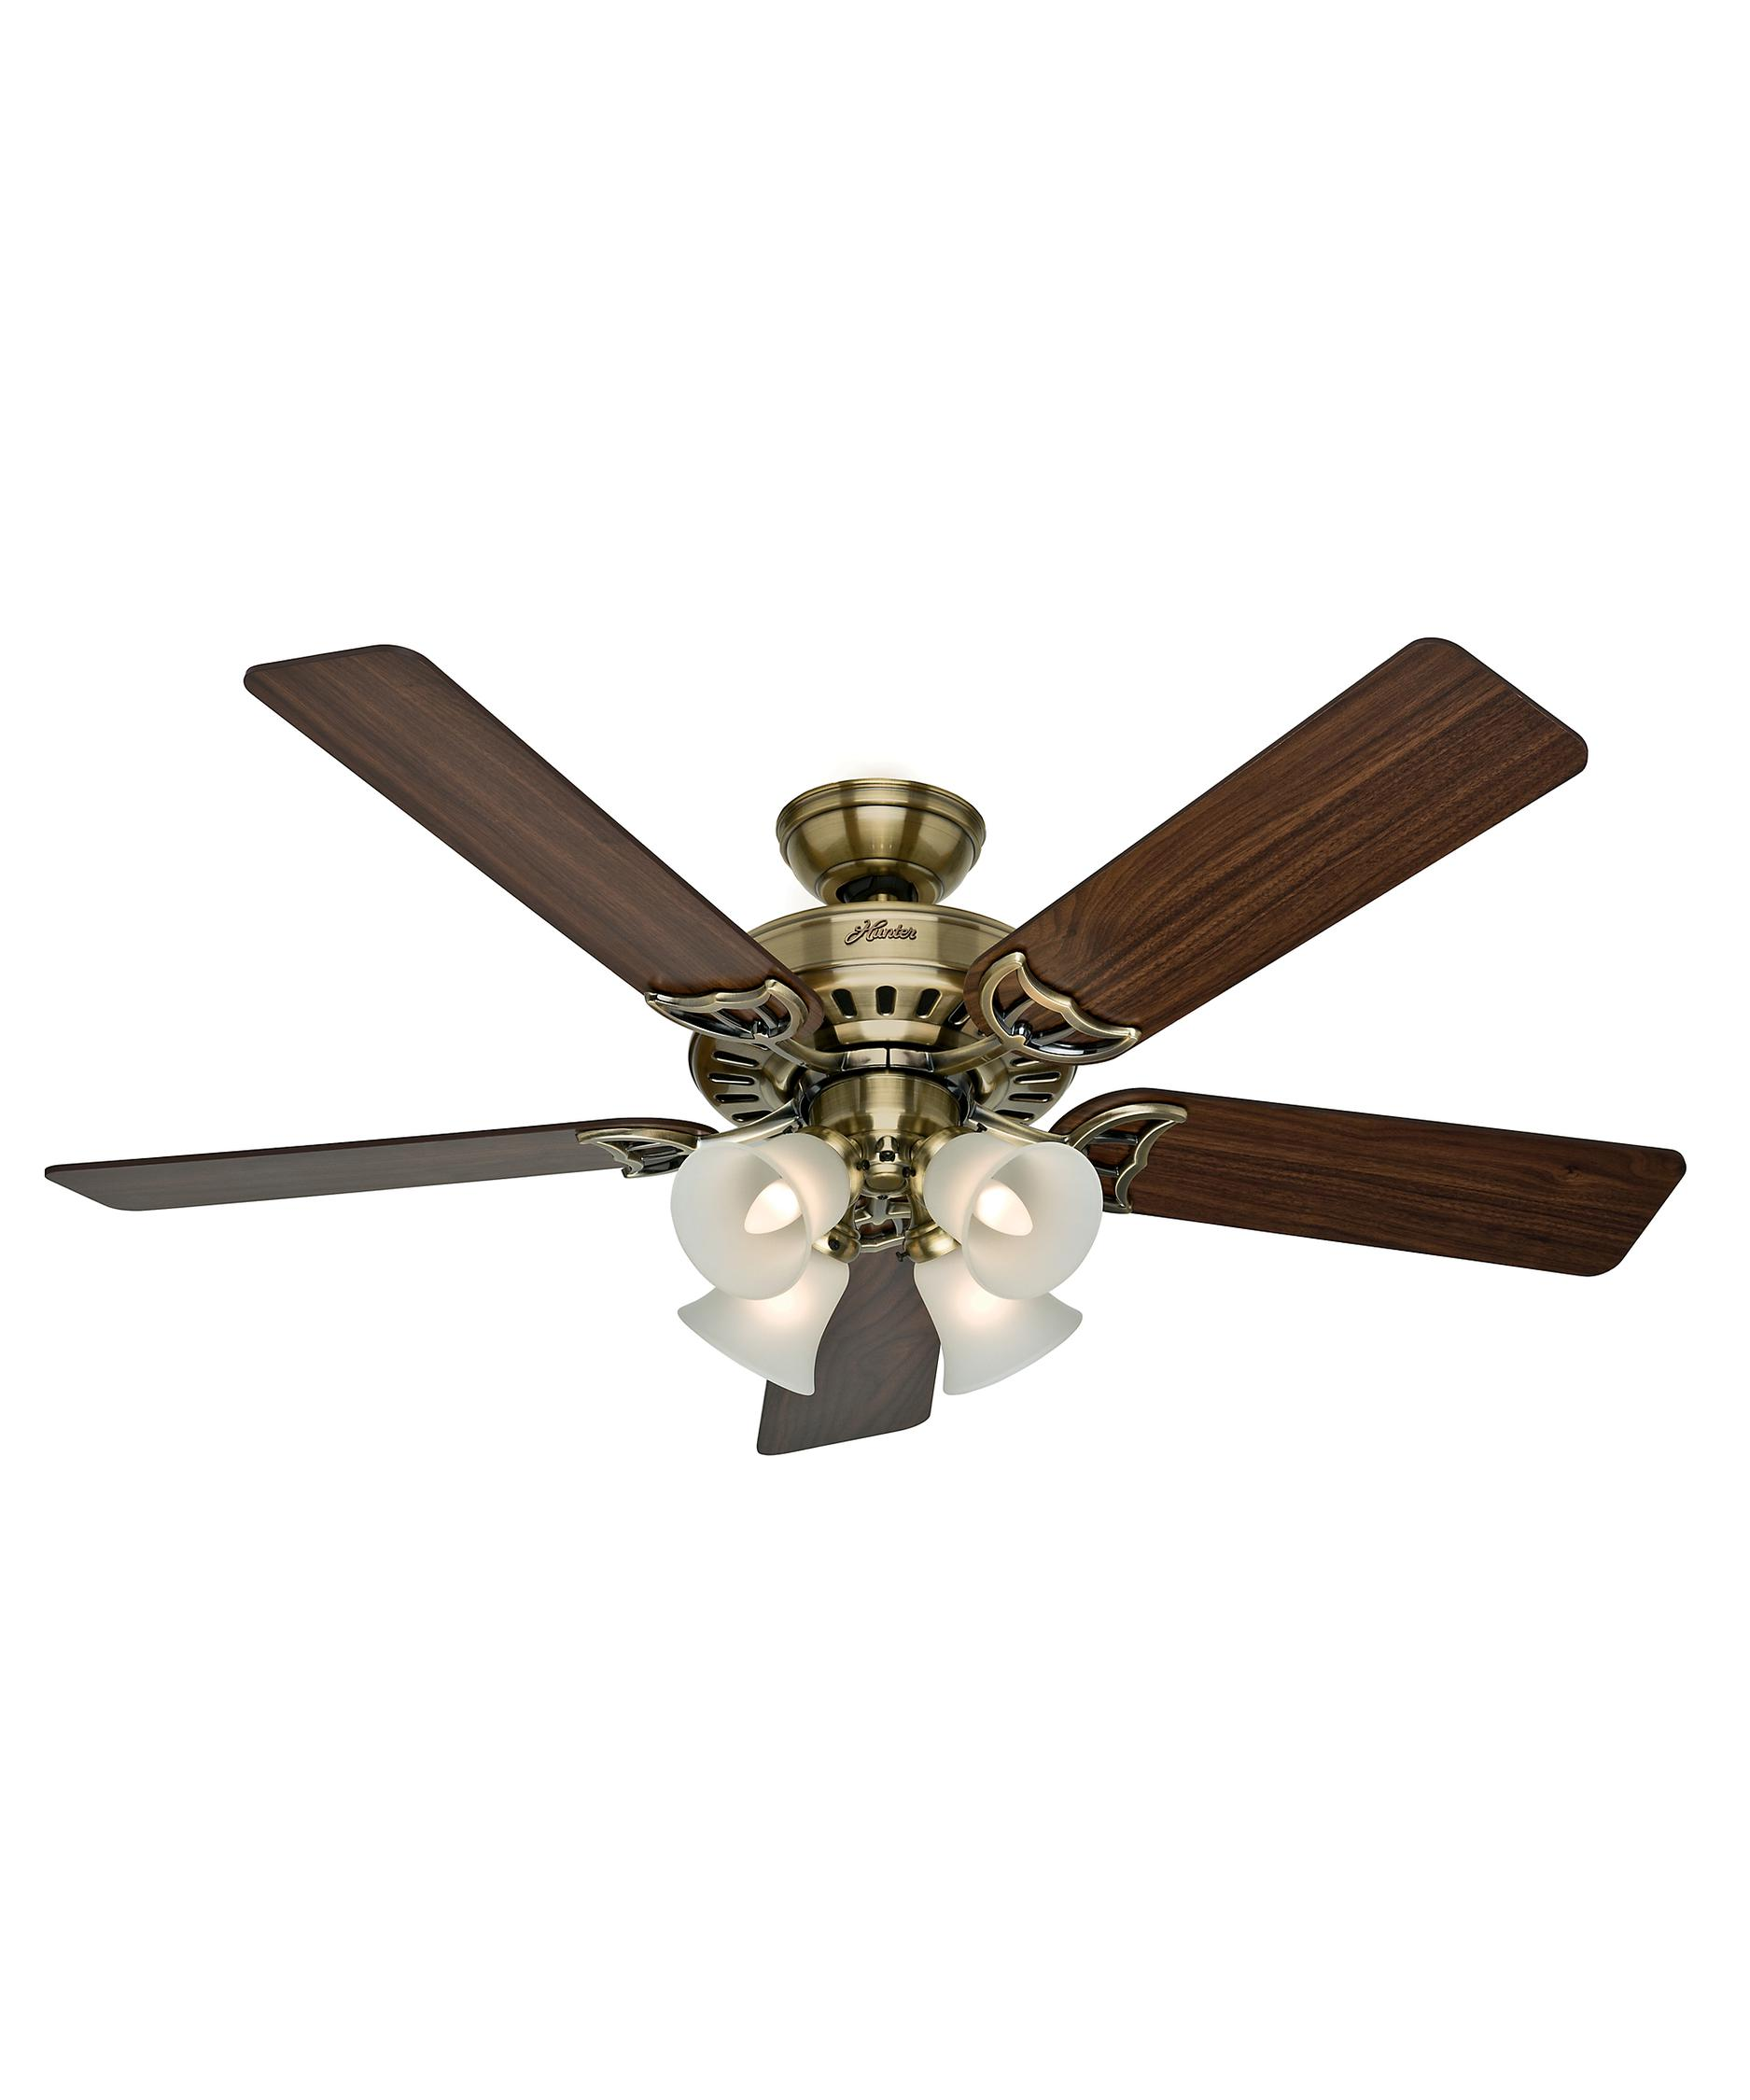 Hunter Ceiling Fan Light Kits Antique Brass: Hunter Fan 53063 Studio Series 52 Inch Ceiling Fan With